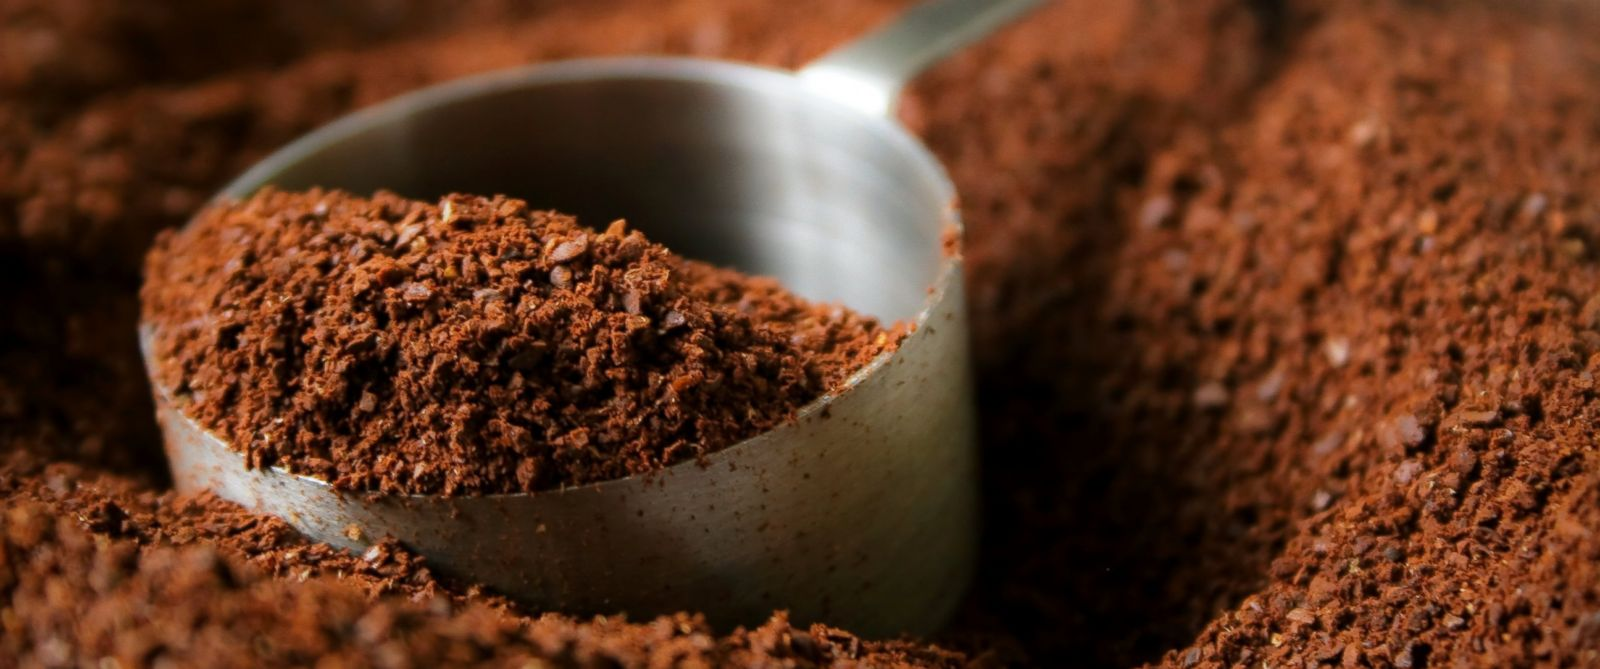 PHOTO: Coffee-based scrubs promise to temporarily reduce the appearance of cellulite and smooth skin.